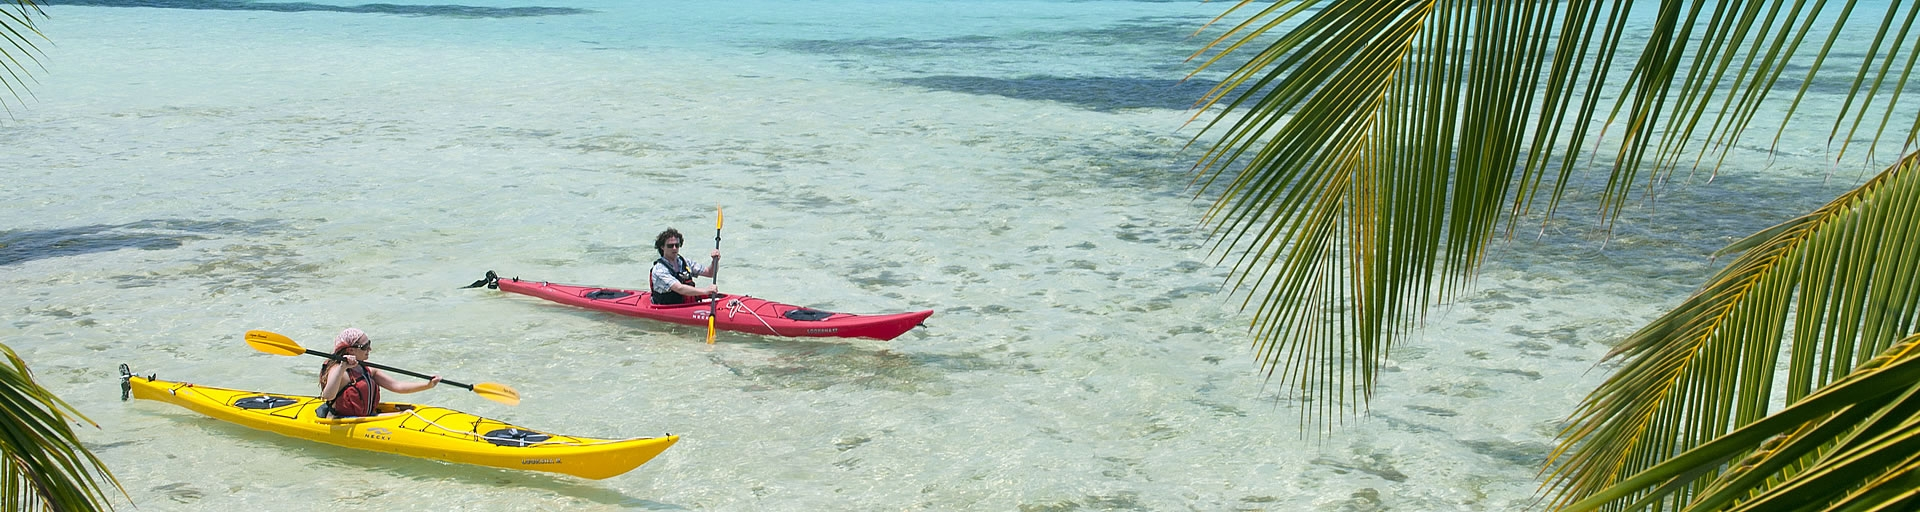 Glover's Reef & Kayak Rental Combo